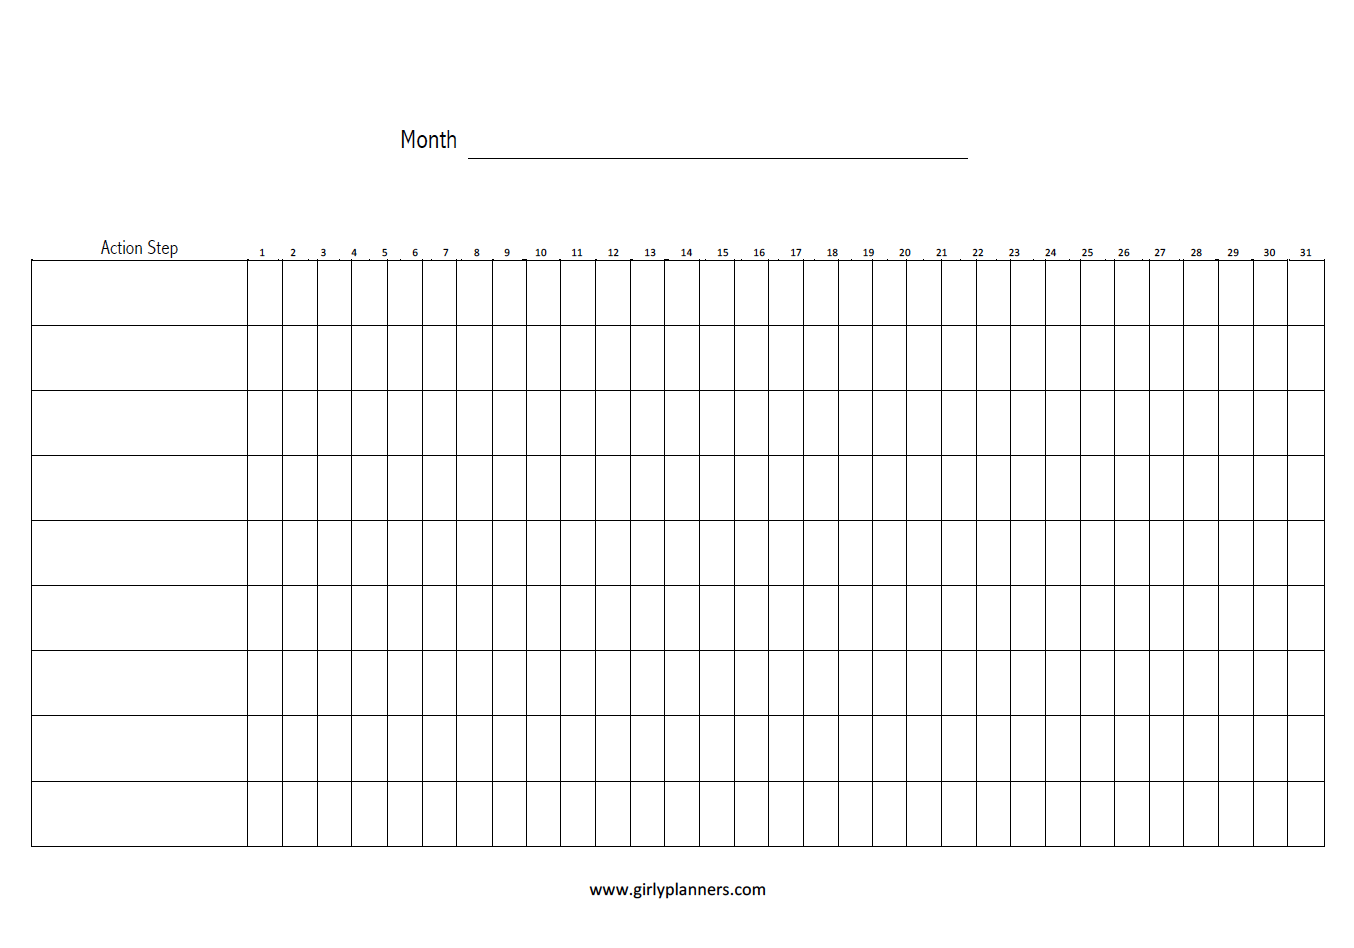 graphic relating to Habit Tracker Free Printable identified as Month to month Objective Behavior Tracker - Cost-free Printable (A5) Free of charge